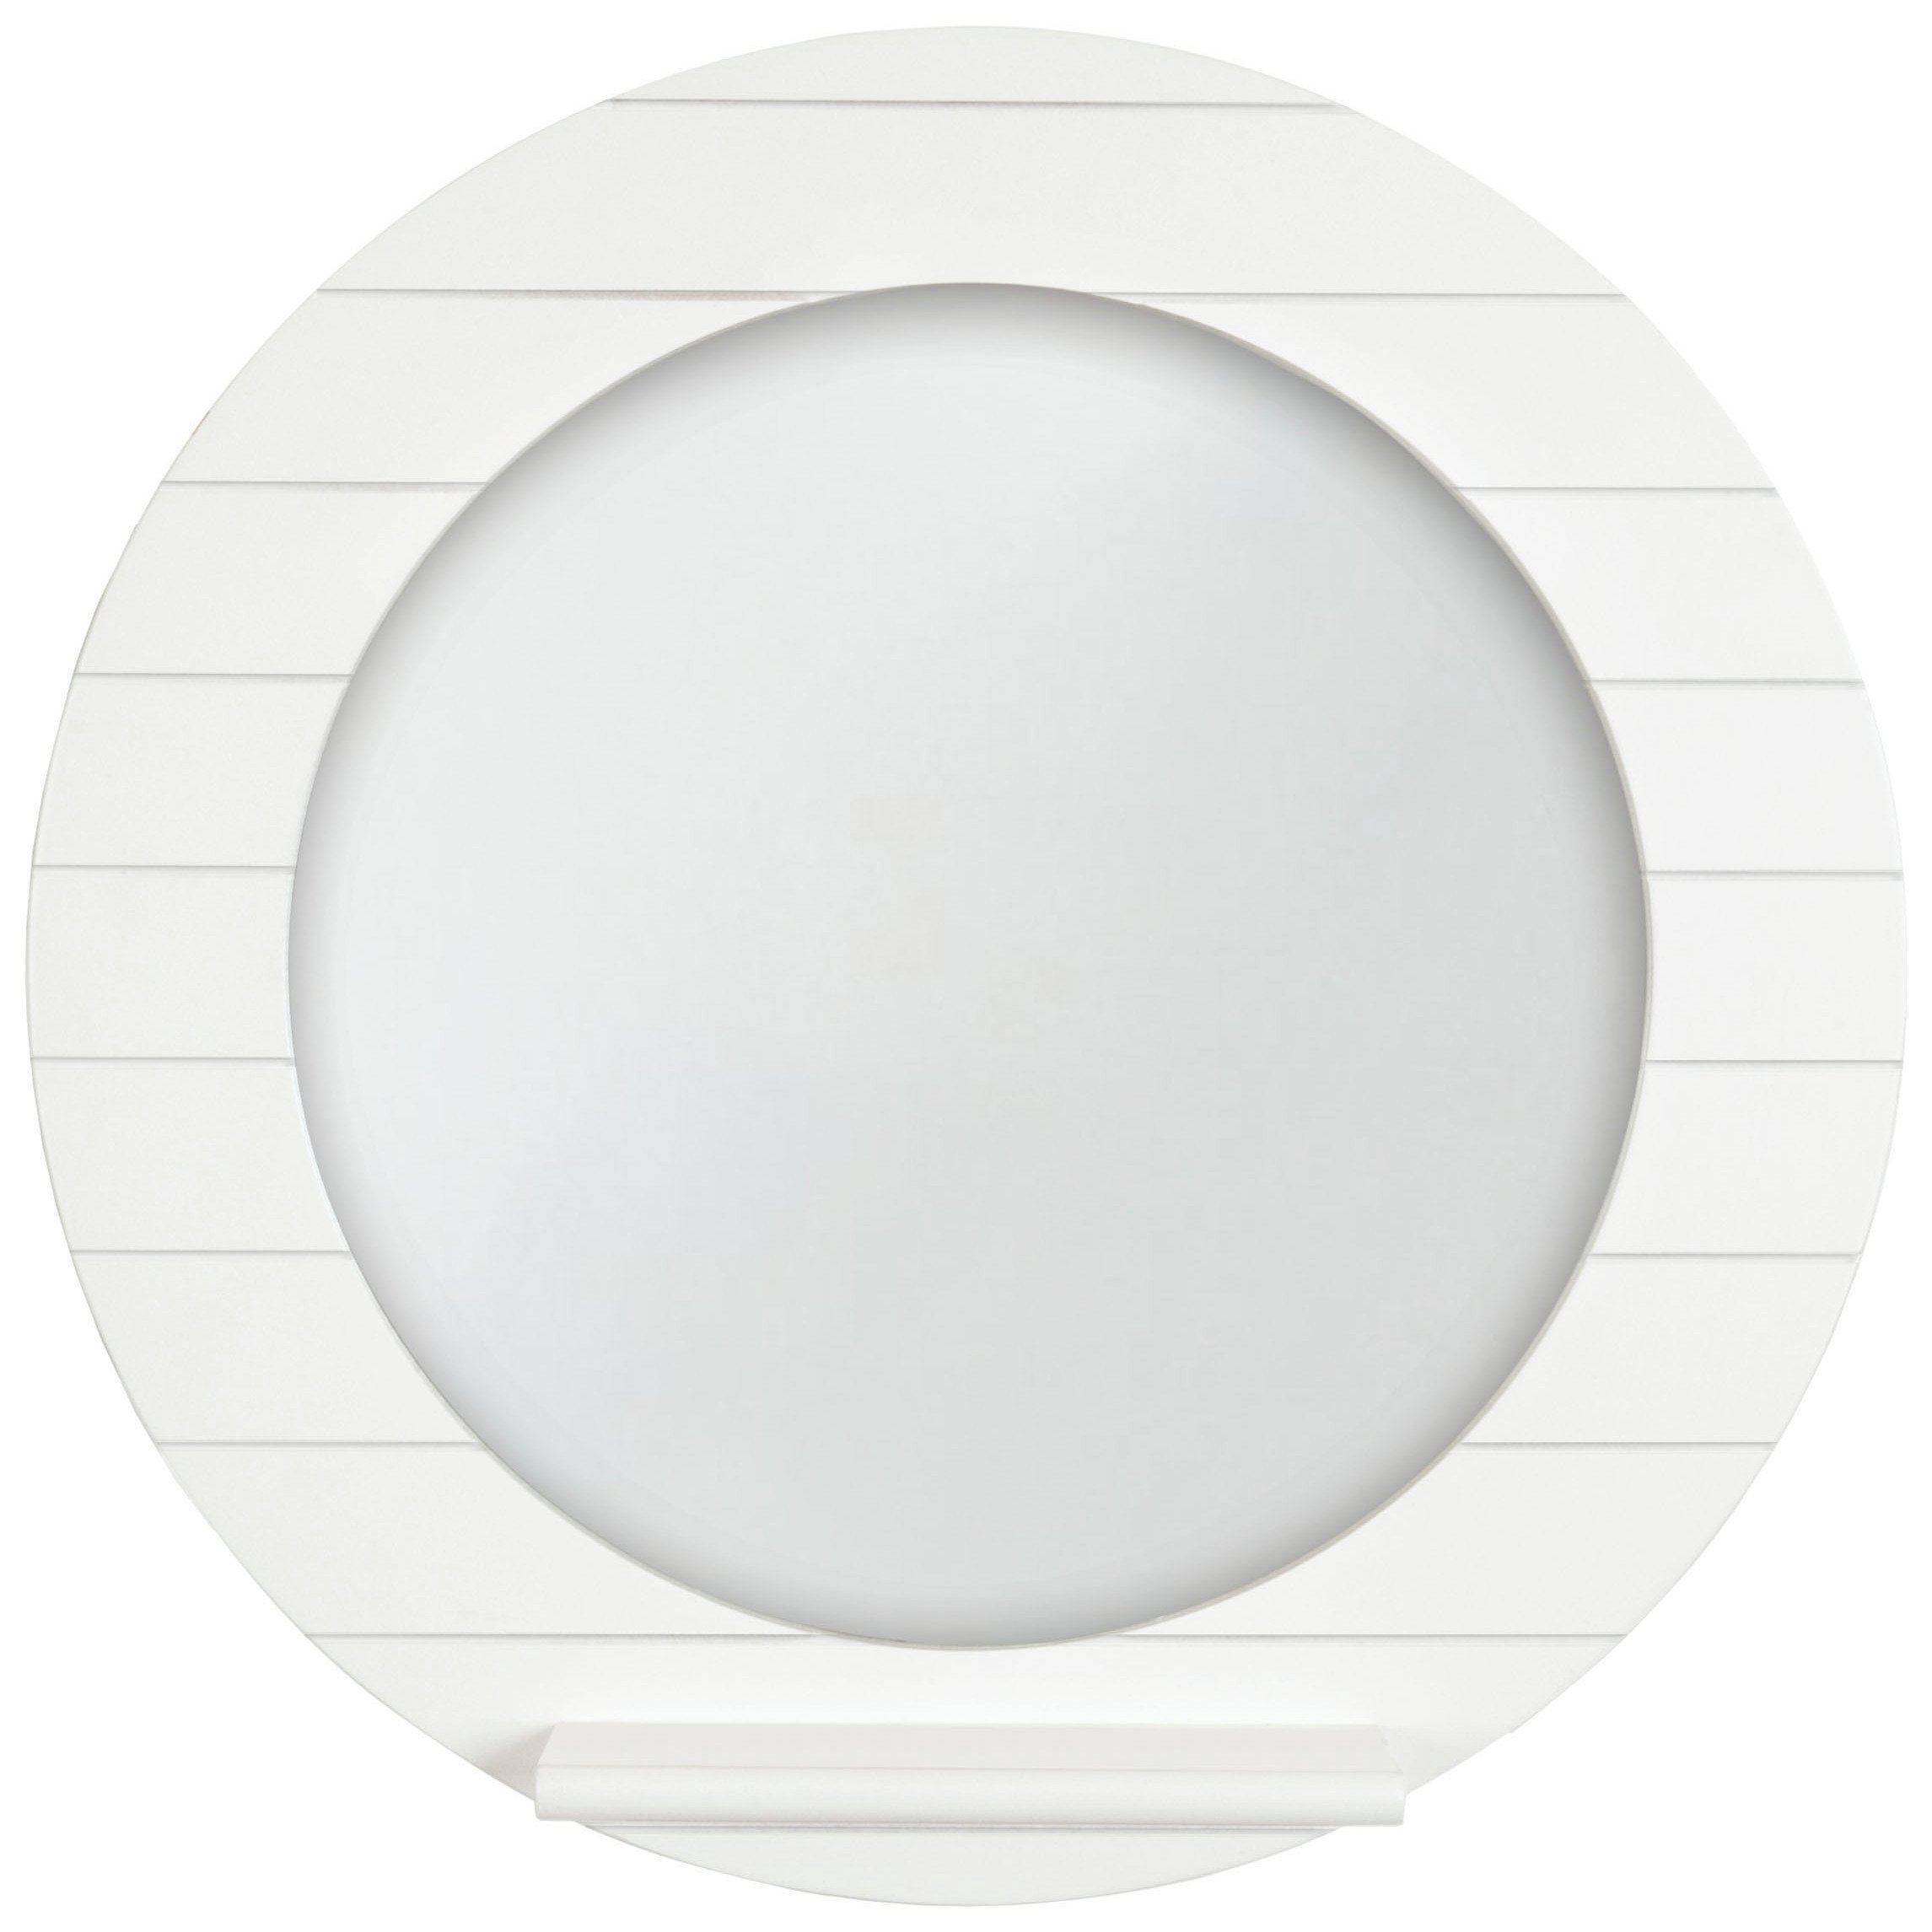 Beachcomber Circle Mirror - 55cm.